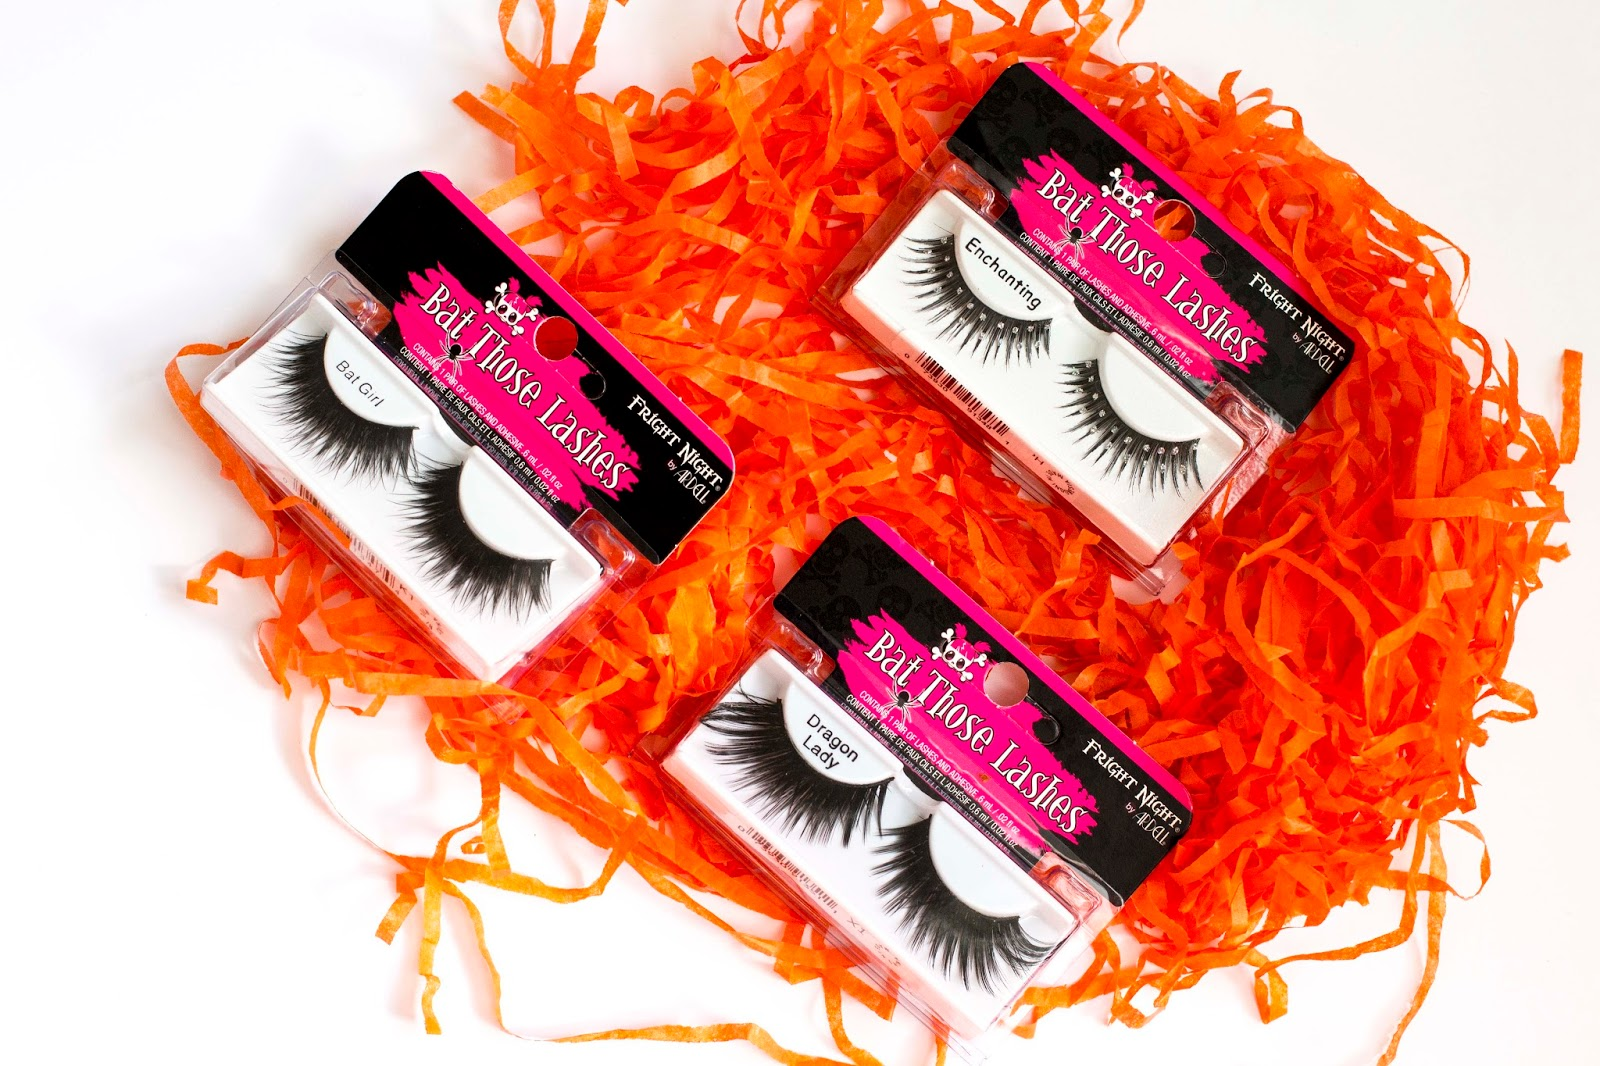 03091043e97 Ardell have created three beautiful sets of lashes, especially for  Halloween. The collection is (cleverly) named Bat Those Lashes and three  completely ...